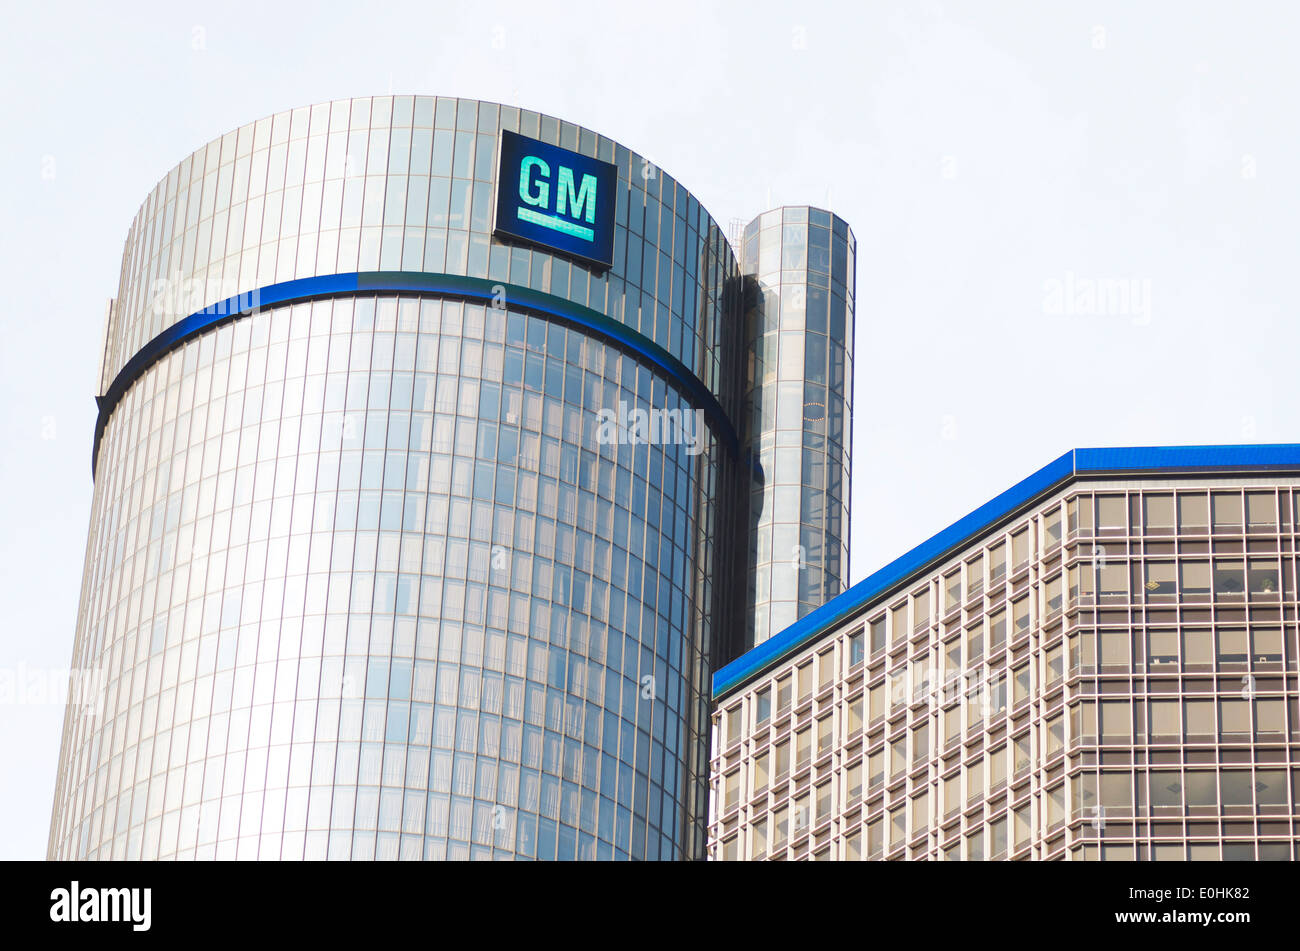 General Motors emblem on the G.M. building in downtown Detroit, part of the Renaissance Center. - Stock Image